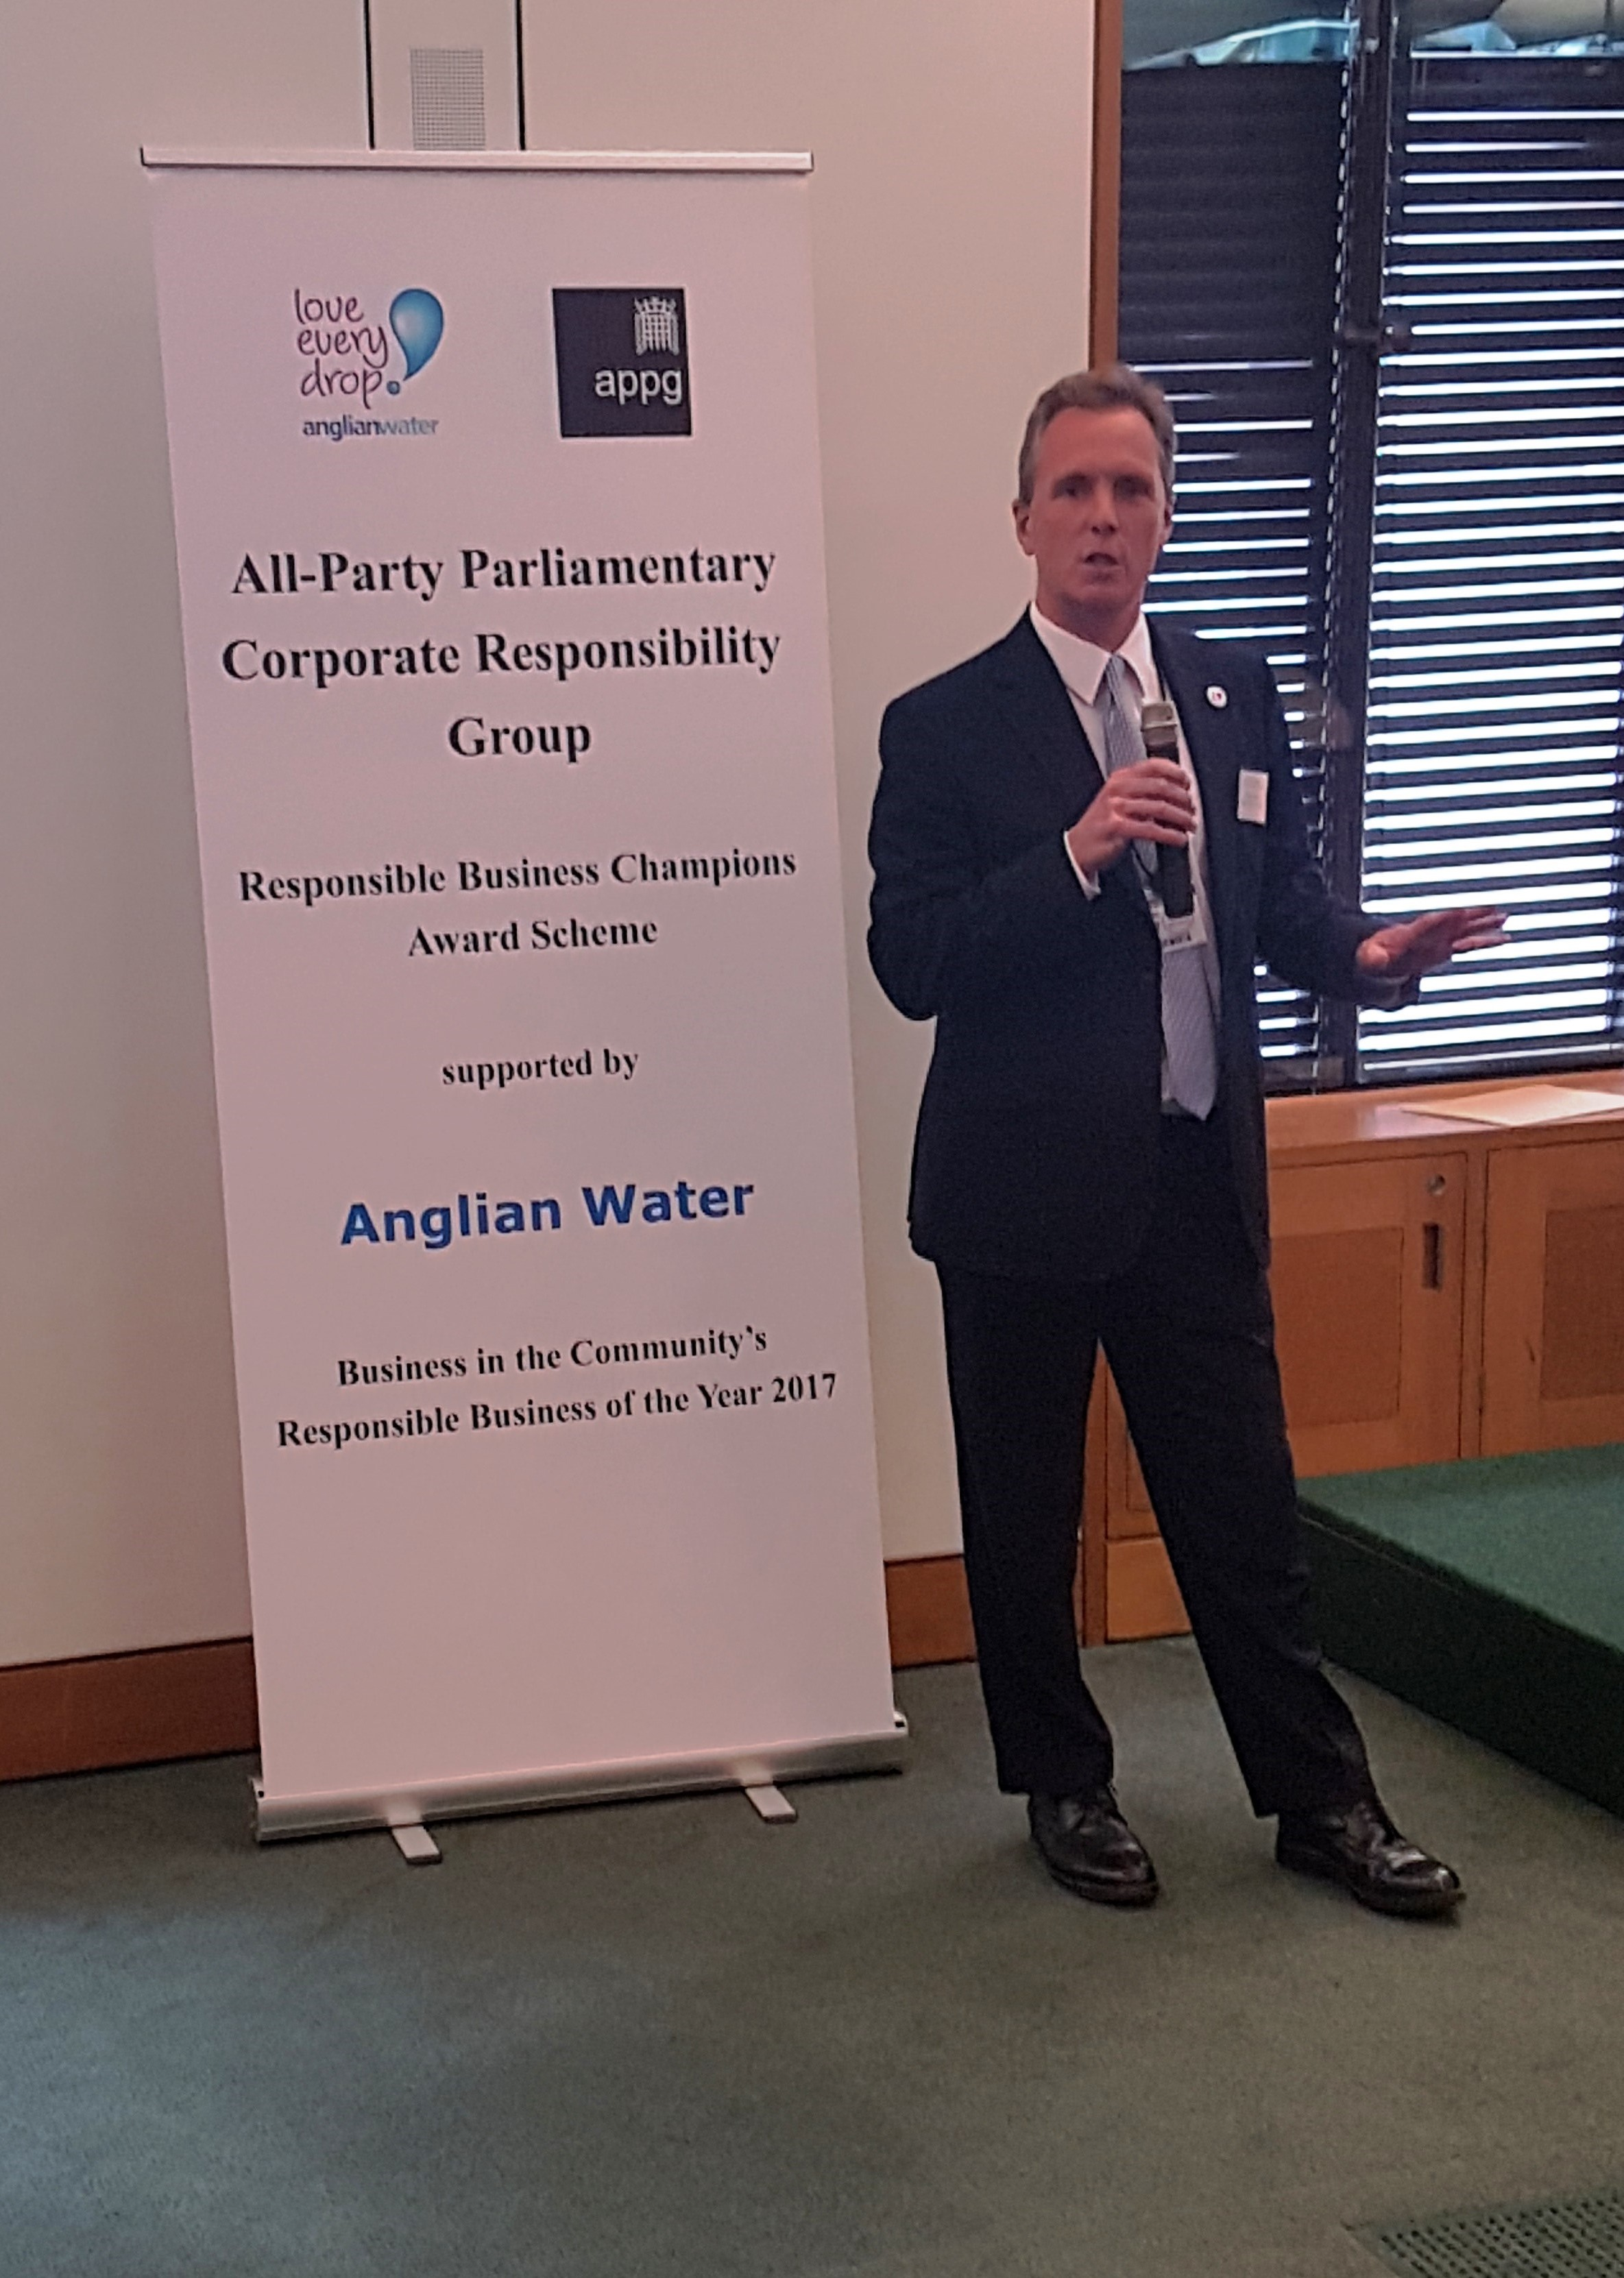 Peter Simpson (Anglian Water)